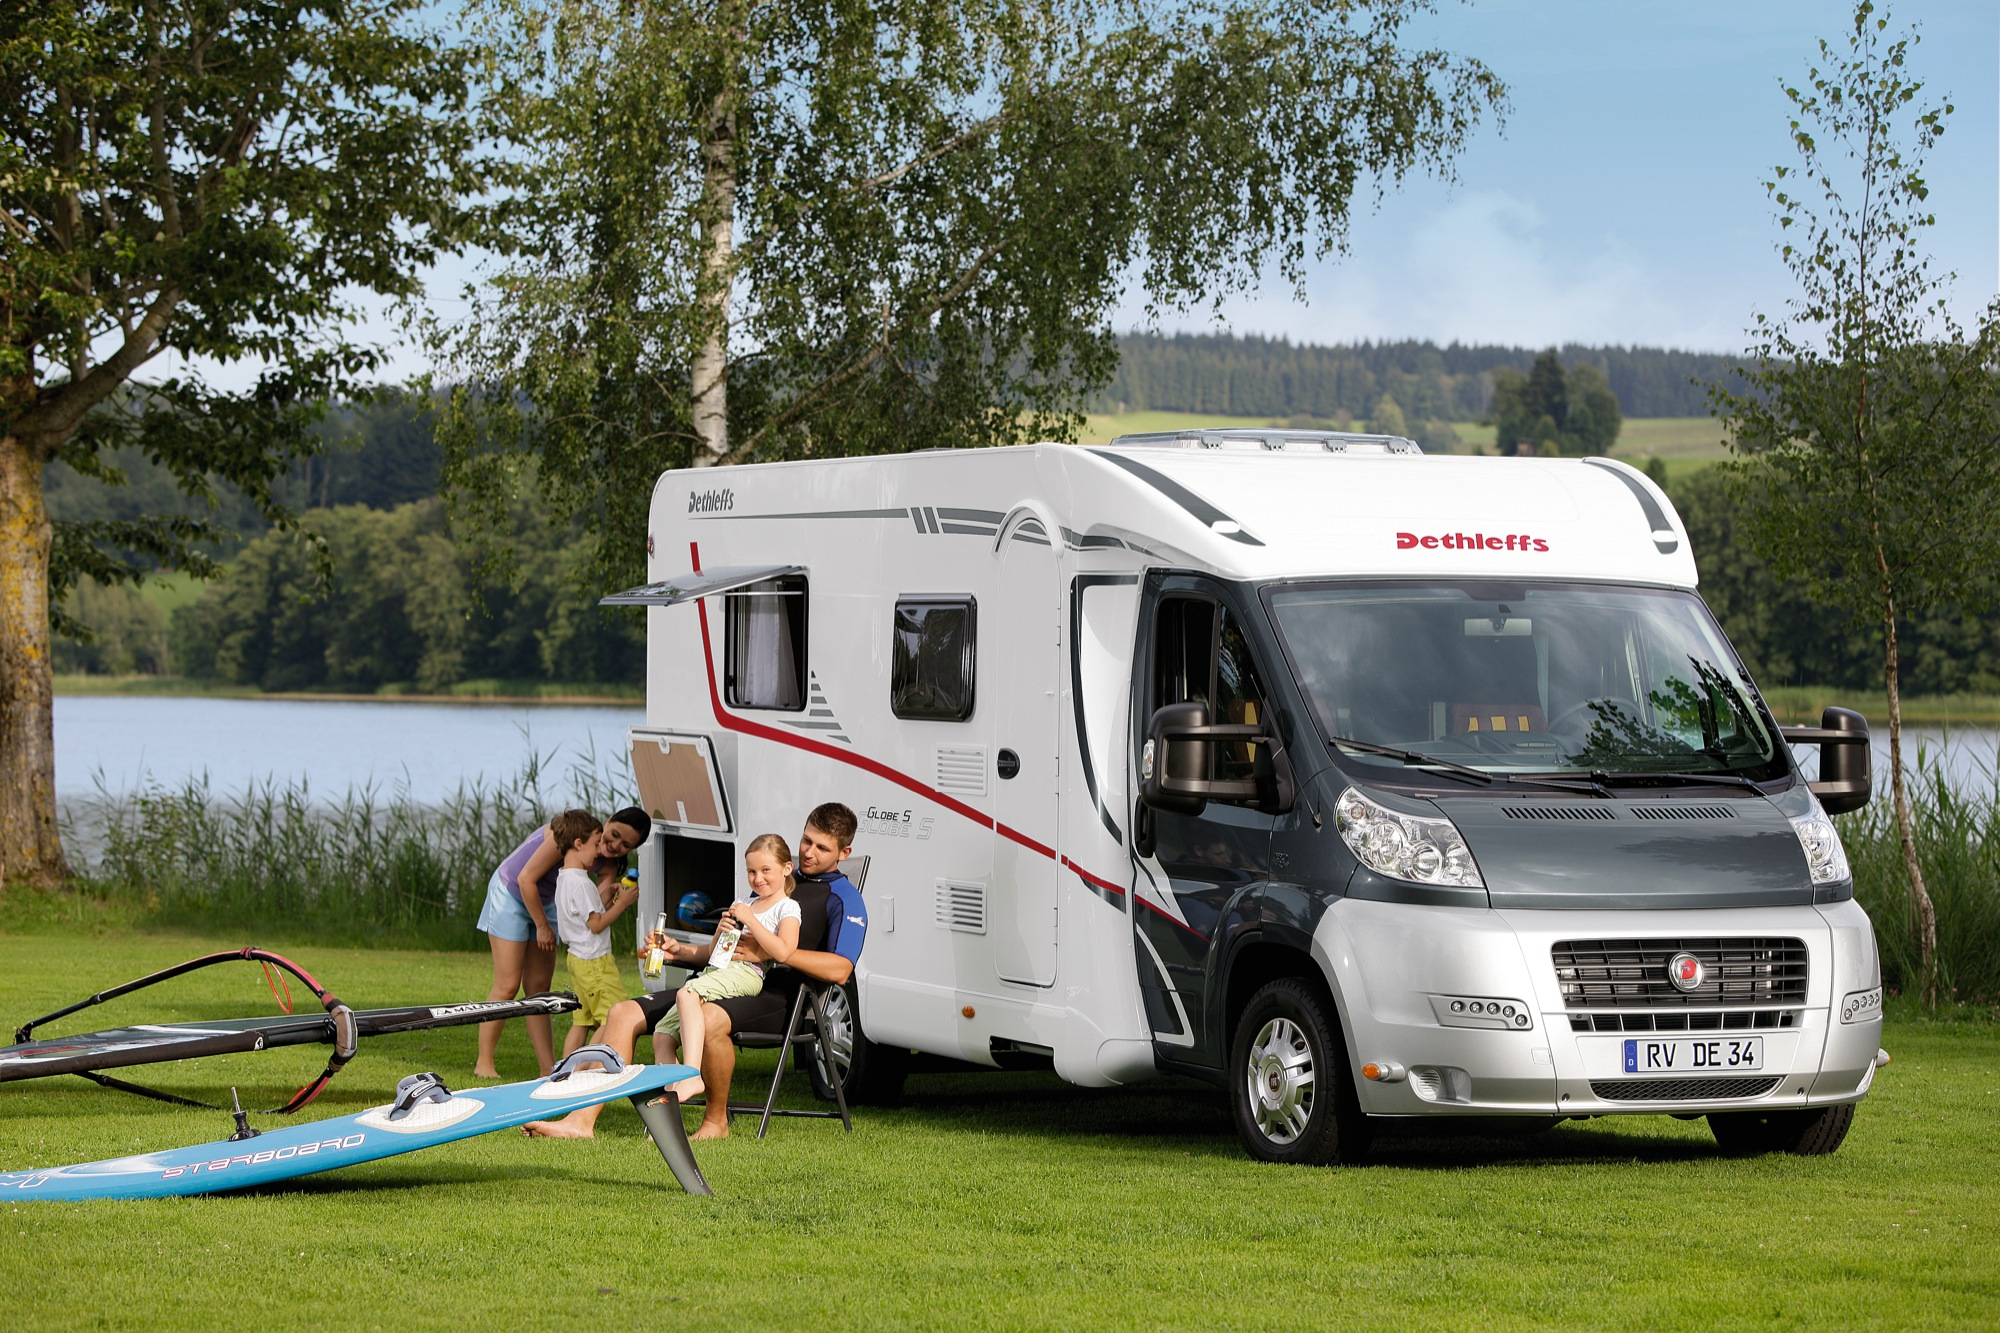 Dethleffs Camper  - Campervan Rental New Zealand